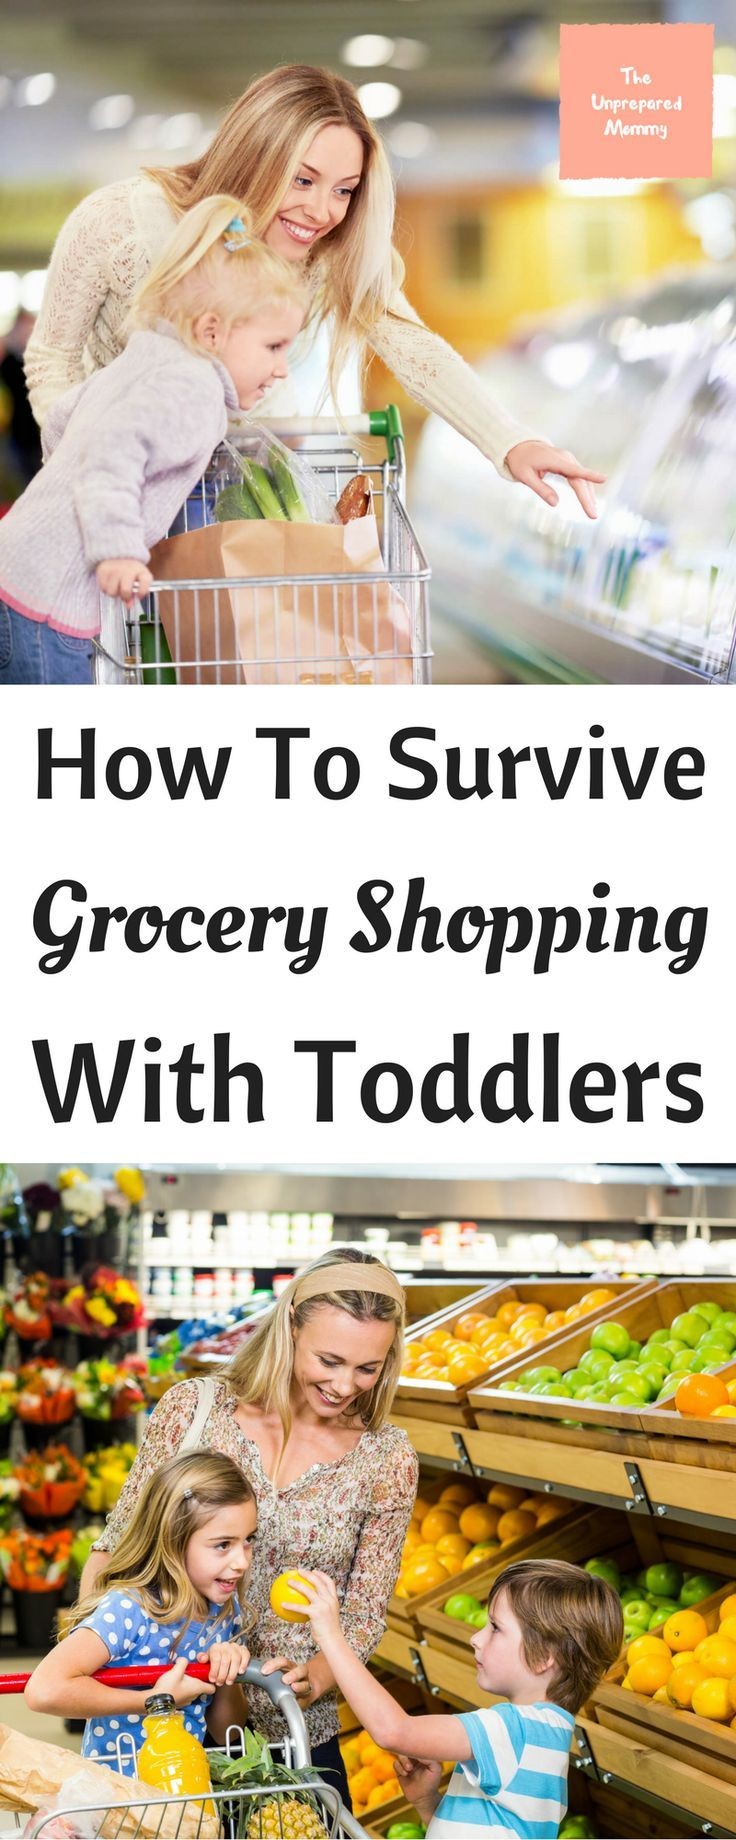 Grocery shopping with kids can become a nightmare if you aren't prepared. These are some great tips to make sure you survive grocery shopping with toddlers.